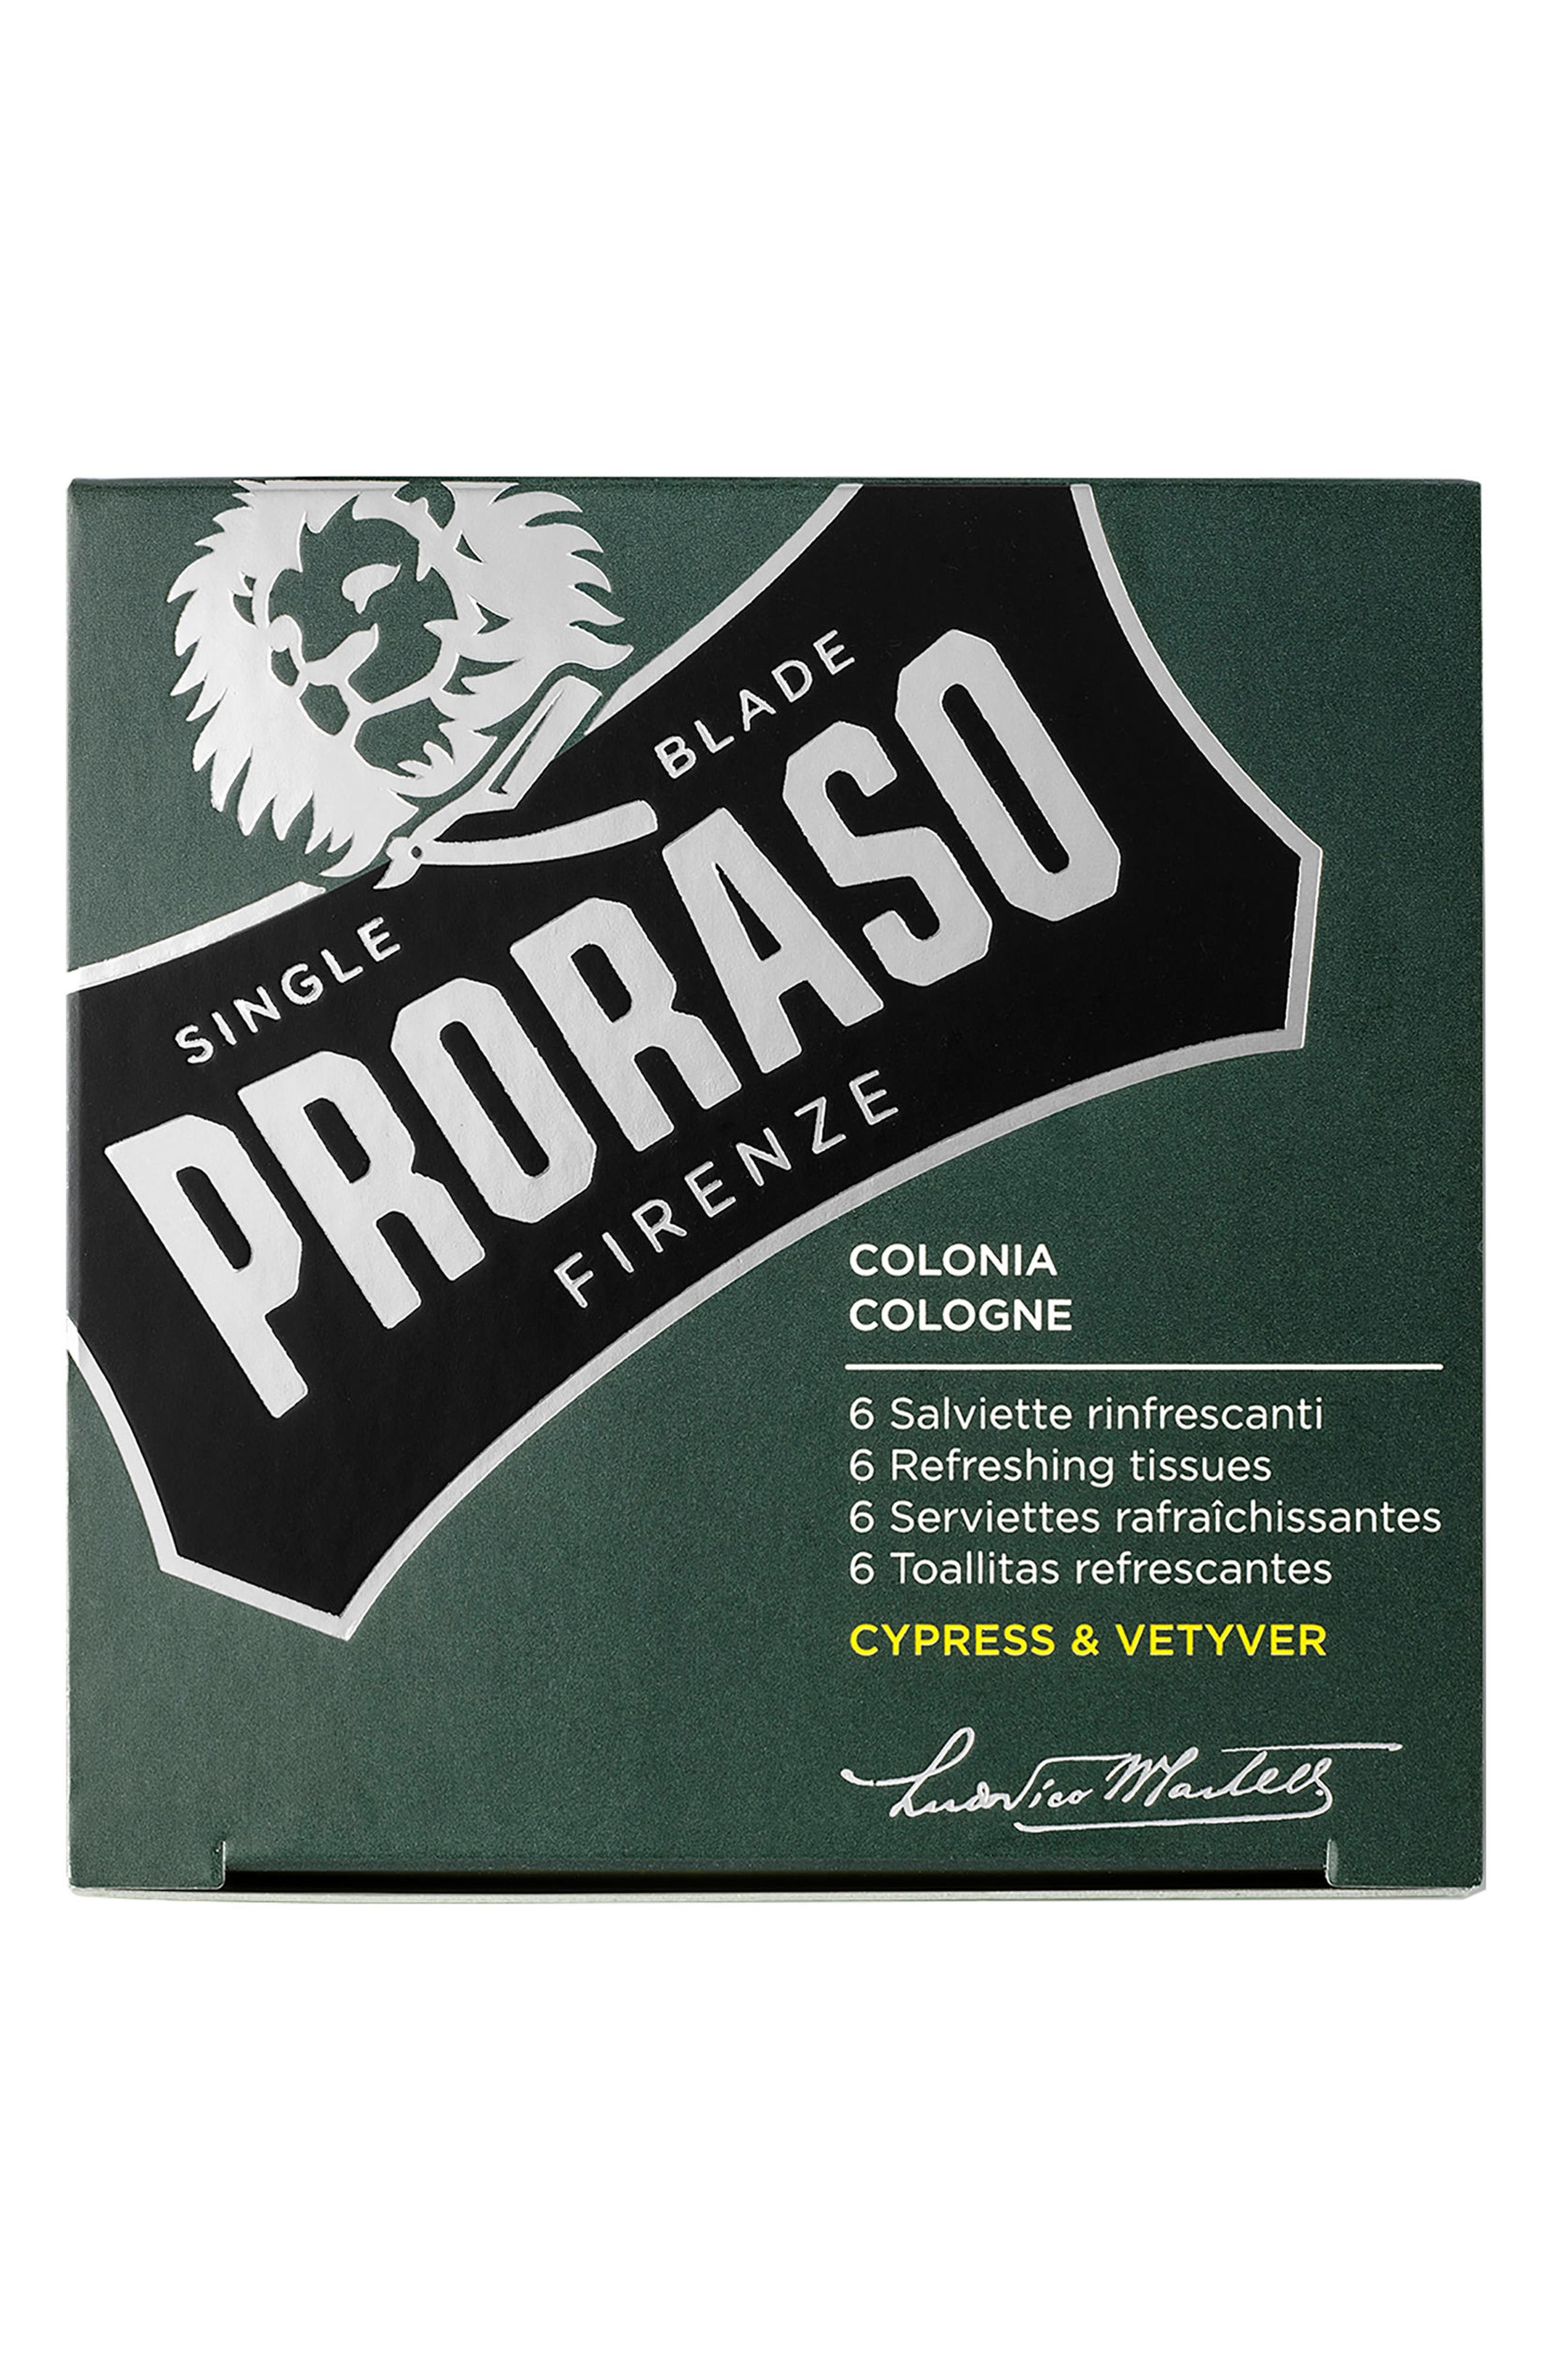 PRORASO,                             Men's Grooming Cypress & Vetyver Refreshing Tissues,                             Alternate thumbnail 3, color,                             NO COLOR